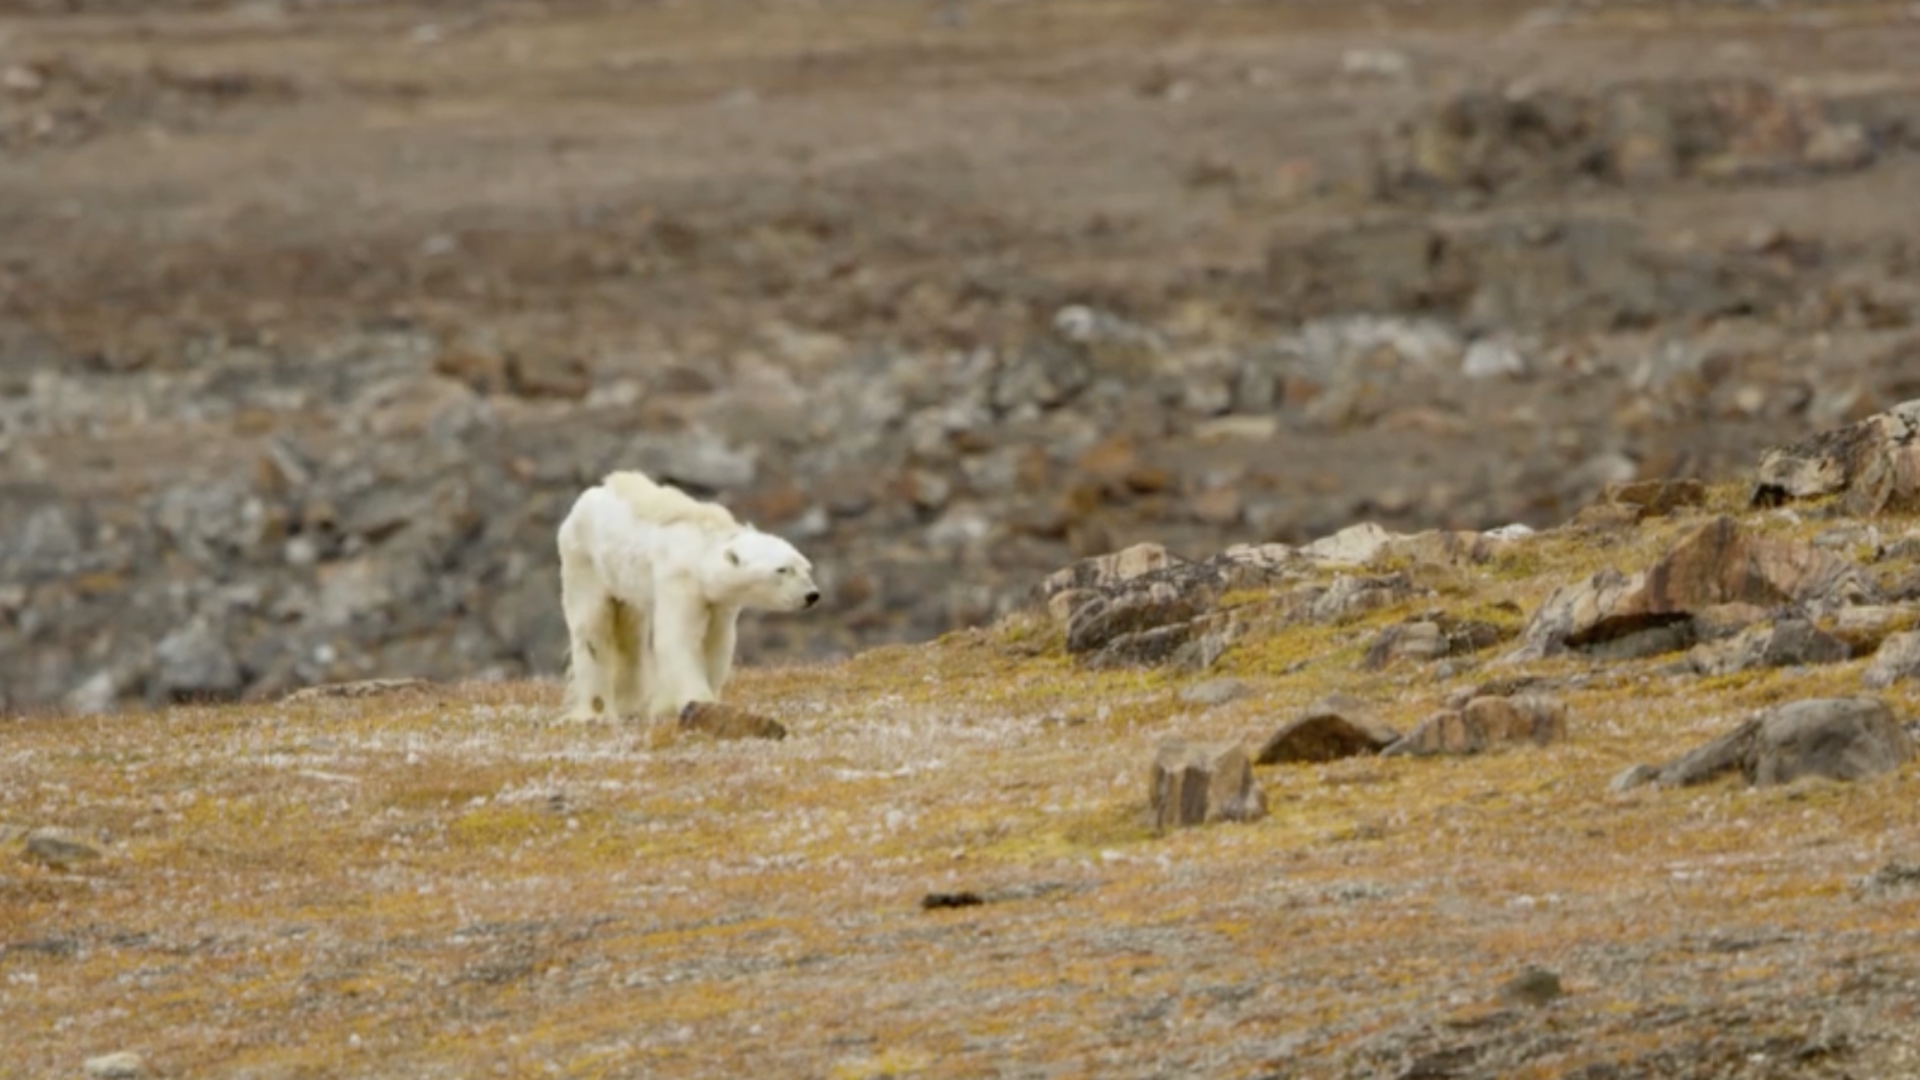 'We stood there crying': Emaciated polar bear seen in 'gut-wrenching' video and photos